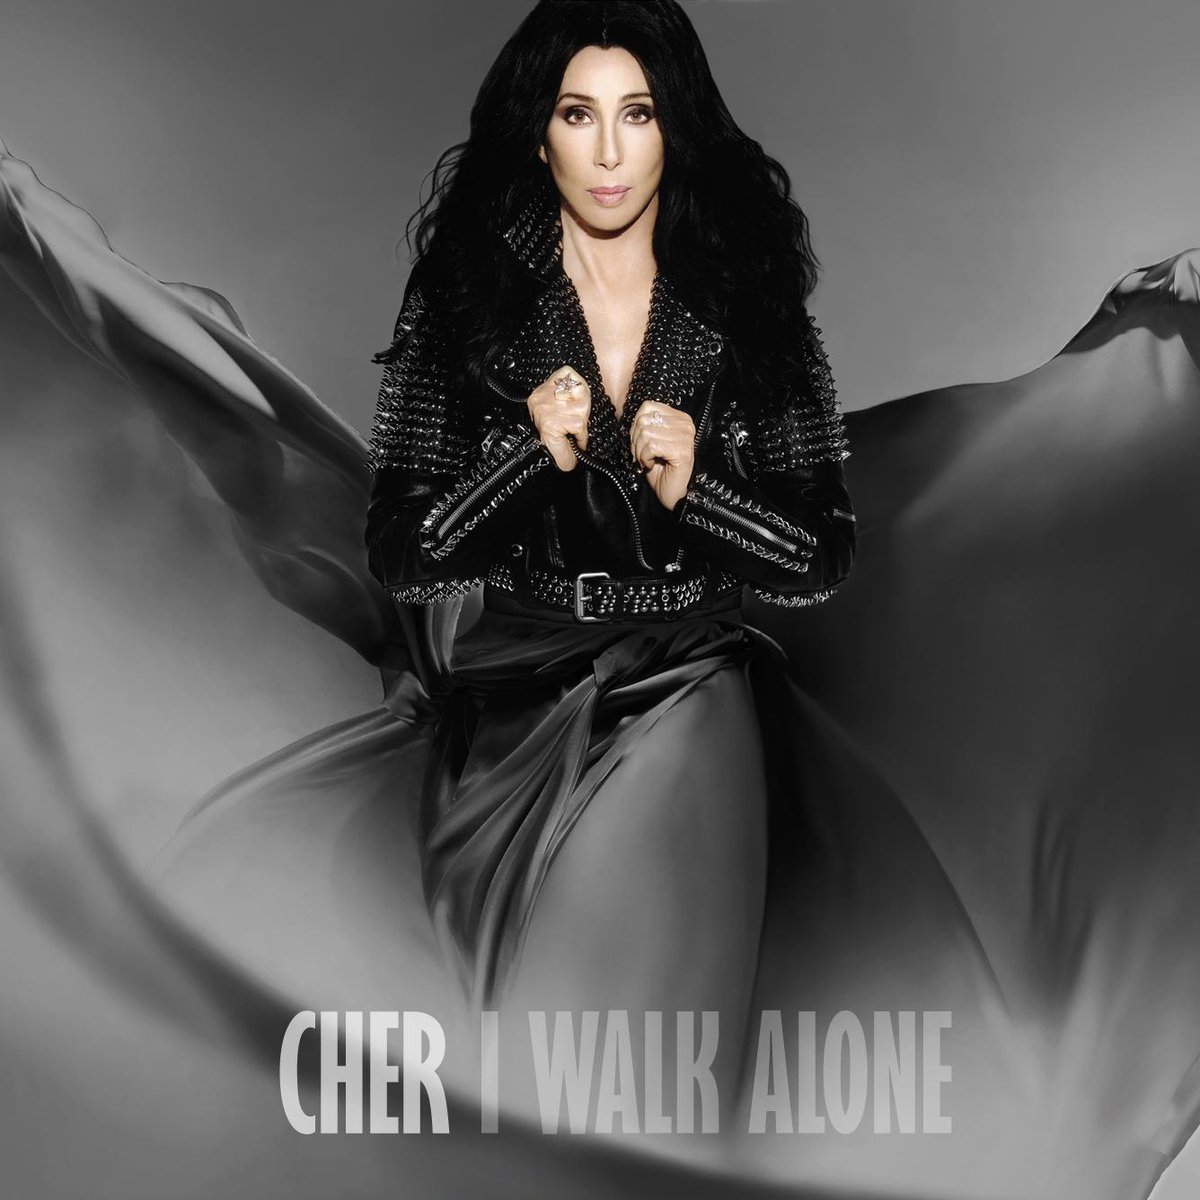 #CherCrew please sign the petition 'Promote @Cher's song #IWalkAlone' to @wbr if you agree https://t.co/guphqWBzh0 http://t.co/TOuu4uv65z